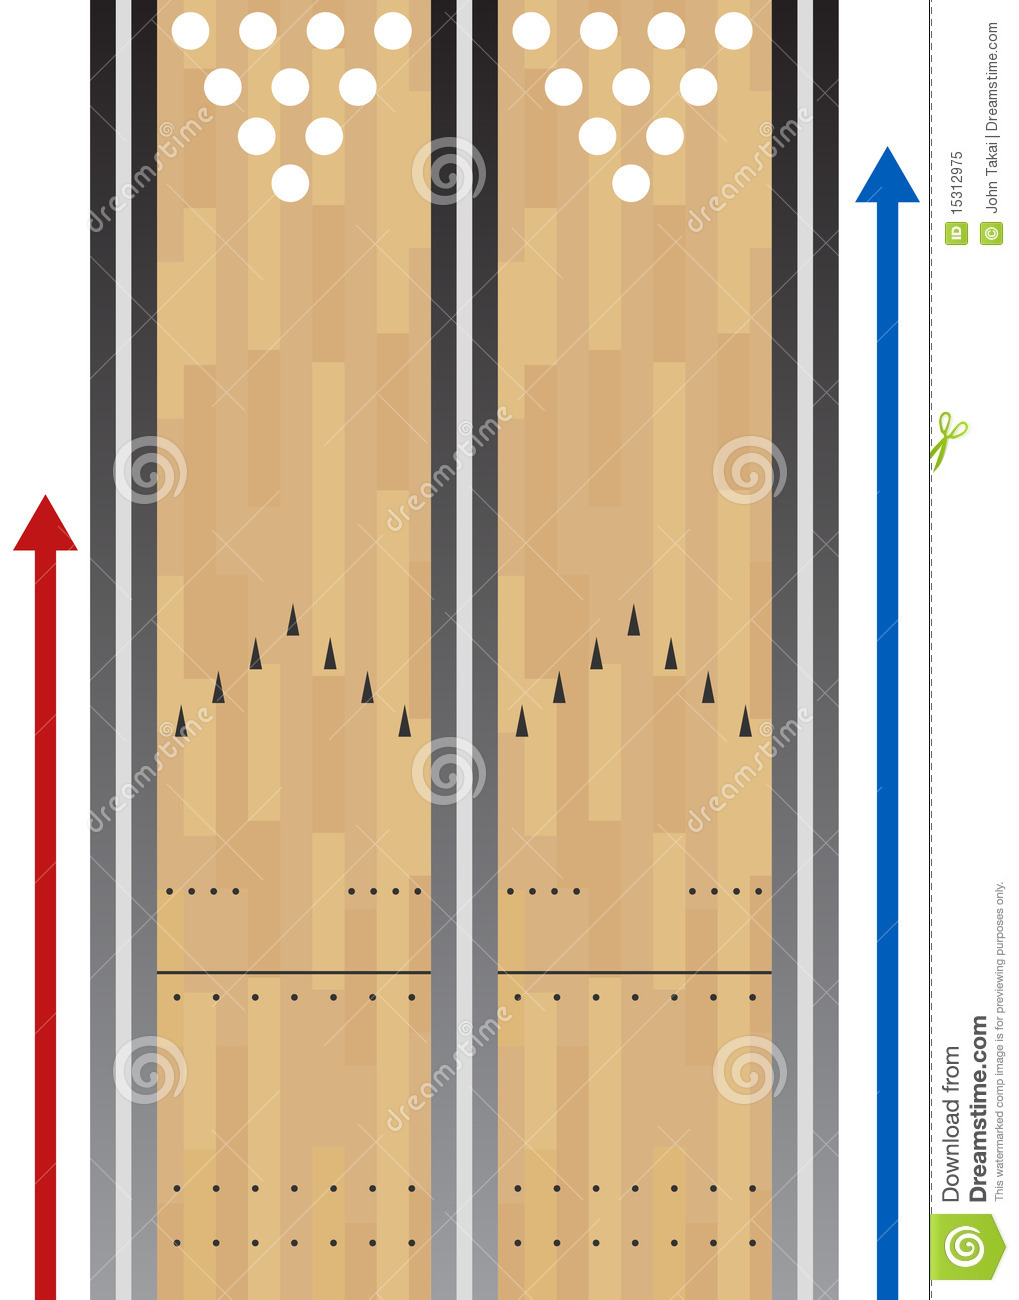 Bowling       Lane    Chart Royalty Free Stock Photo  Image  15312975